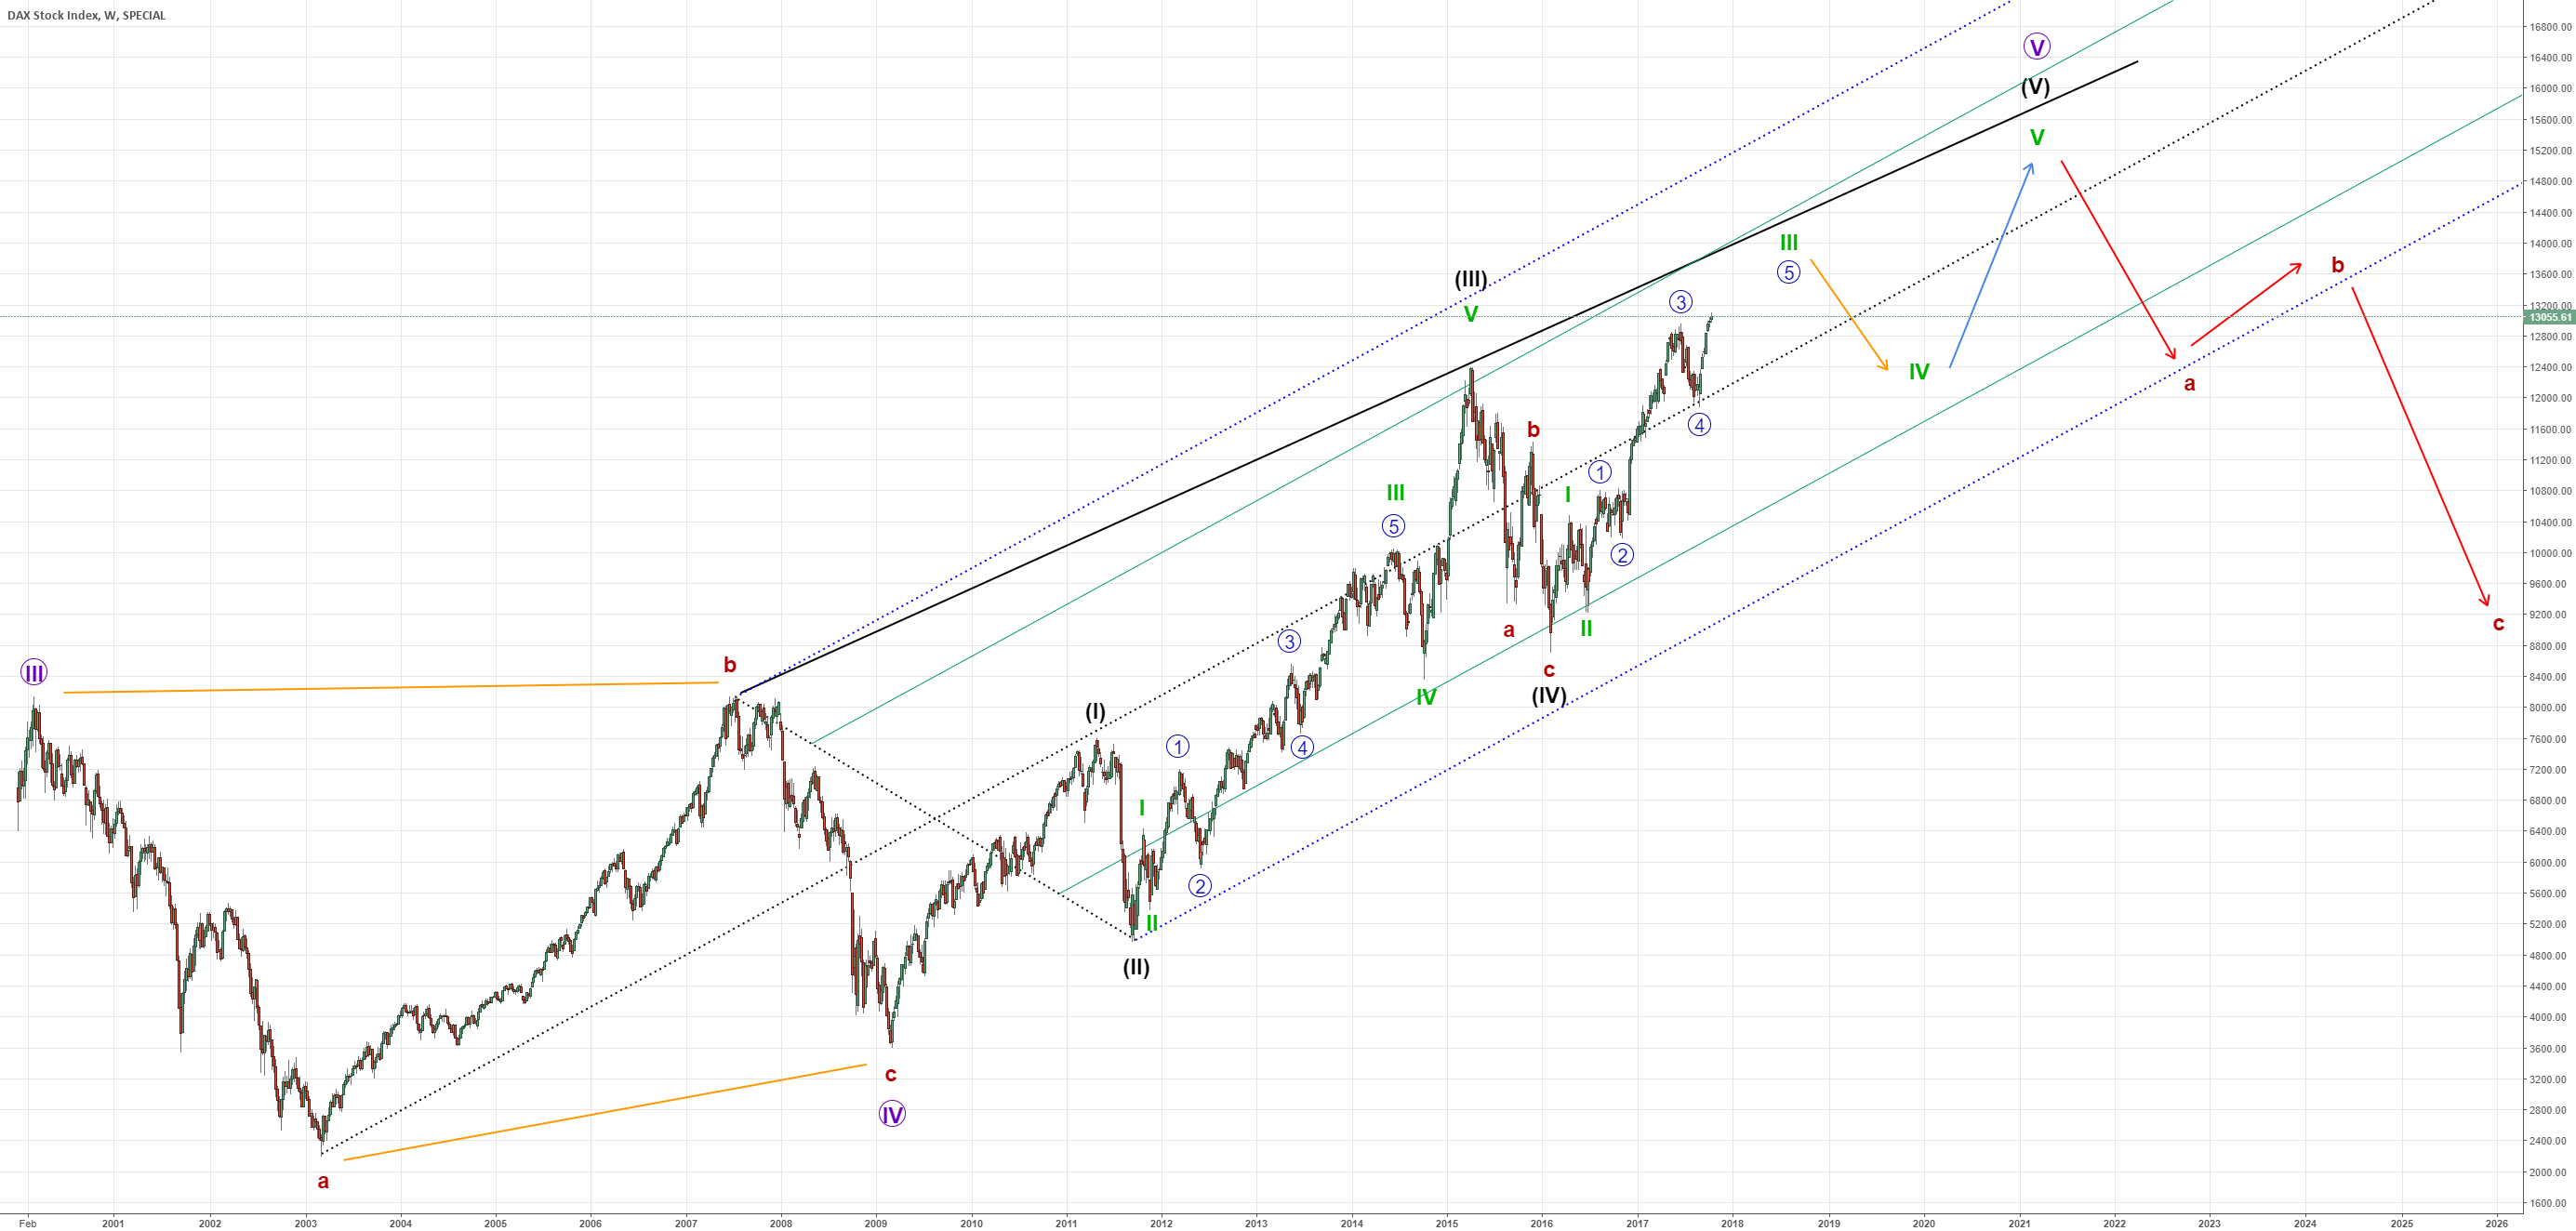 GER30 (DAX) - Full Elliott Wave Cycle & Wave Count